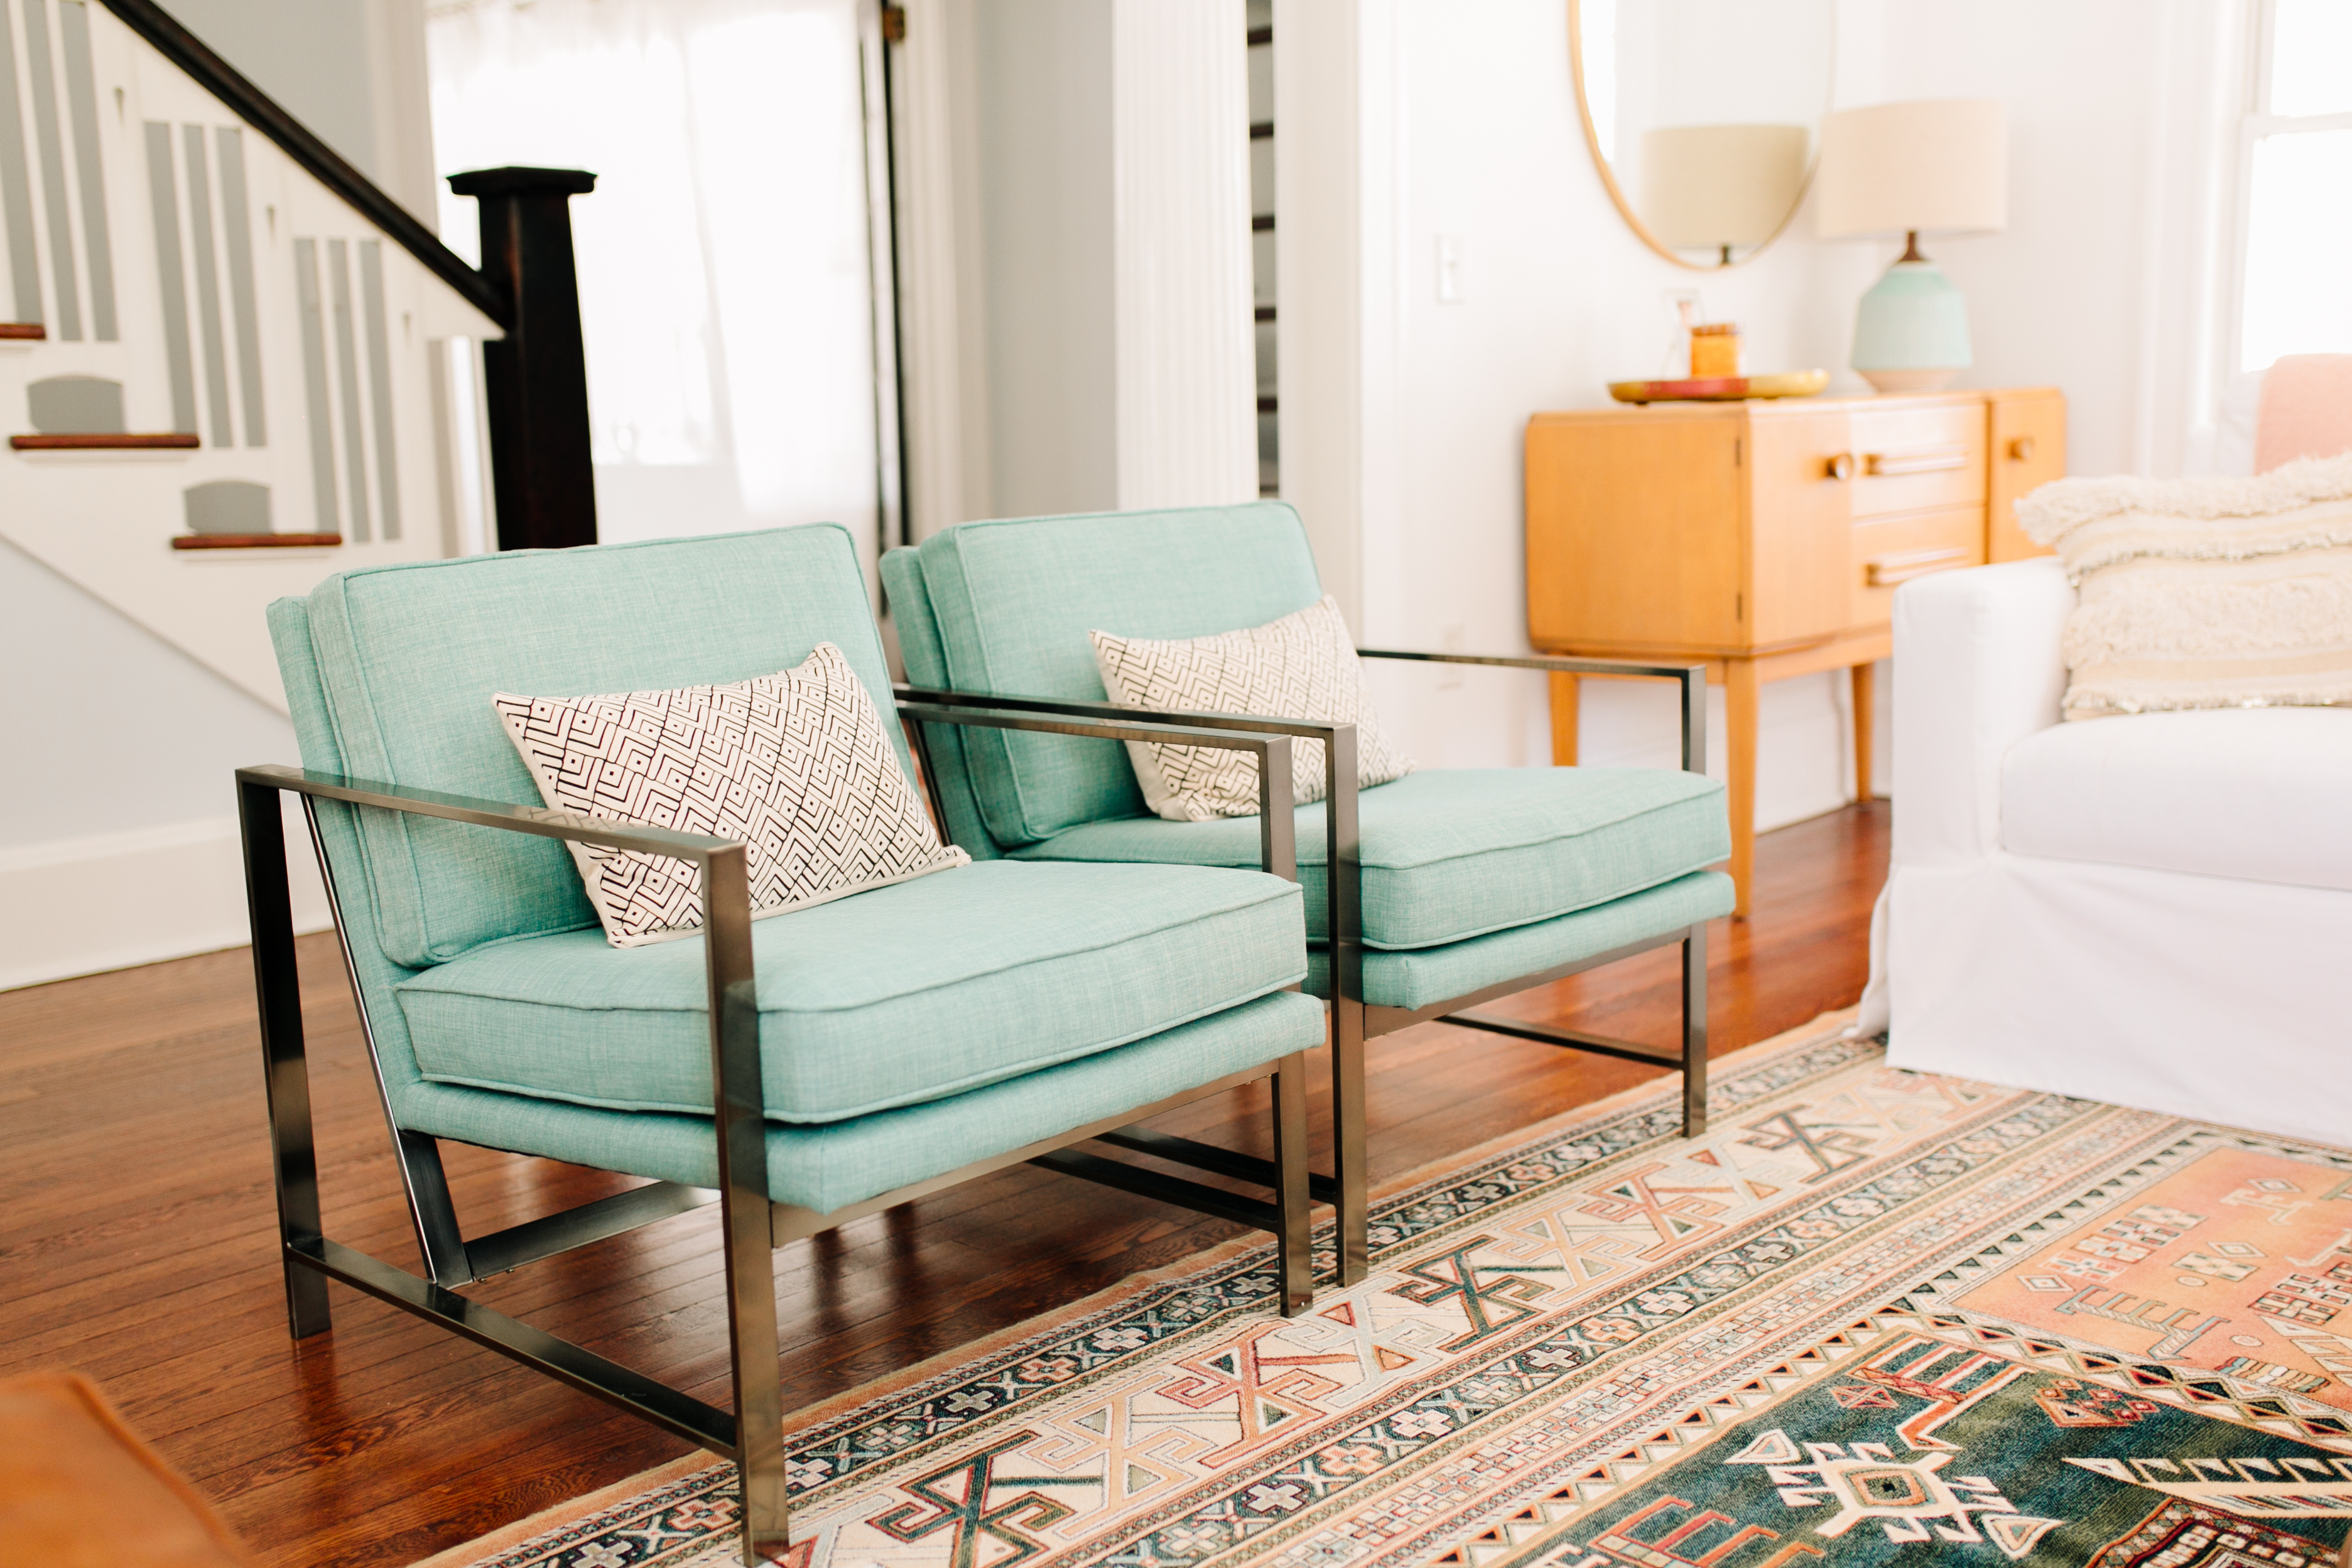 Decorating A New Home Can Be Daunting You Ve Just Packed Up All Your Belongings Lugged Your Existing Furniture Across Town Or The Country And Suddenly